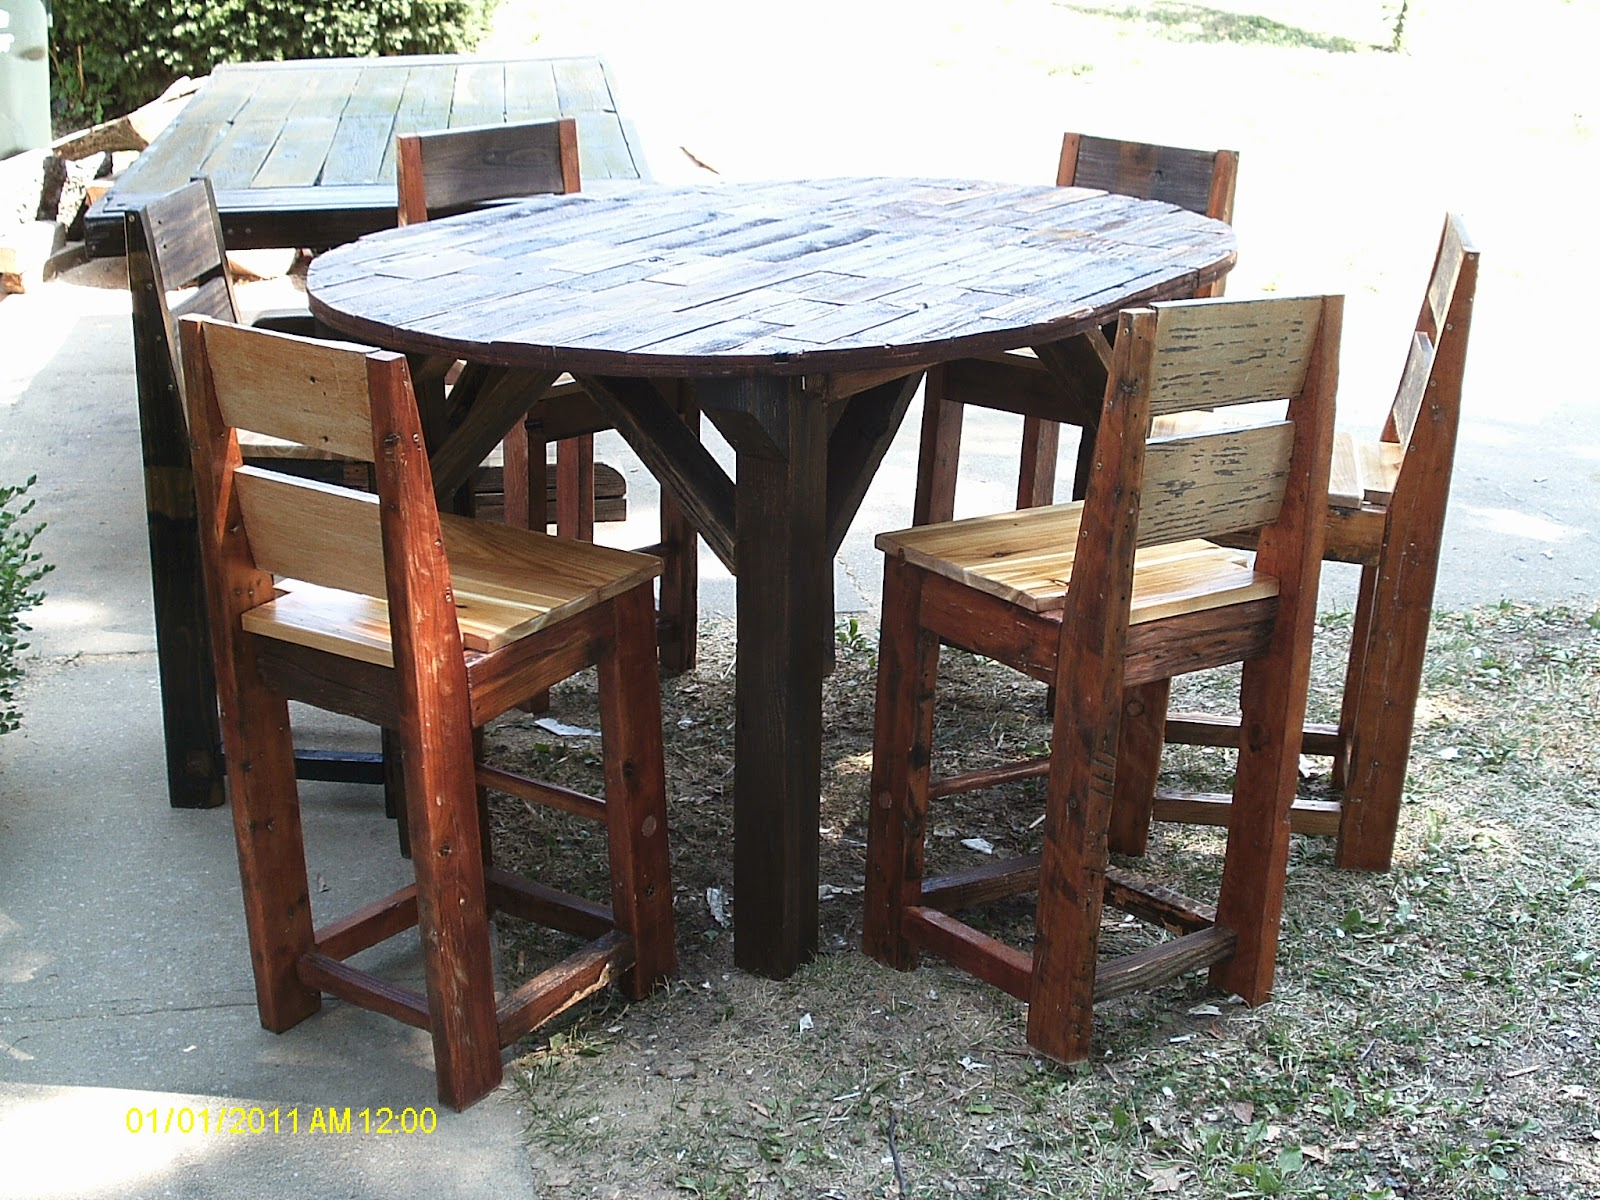 Handmade rustic log furniture 48 x 36 tall pub table with leaf the table and chairs are made from reclaimed fence and barnwood the table top has 3 staines and some boards are natural i used ebony golden oak watchthetrailerfo